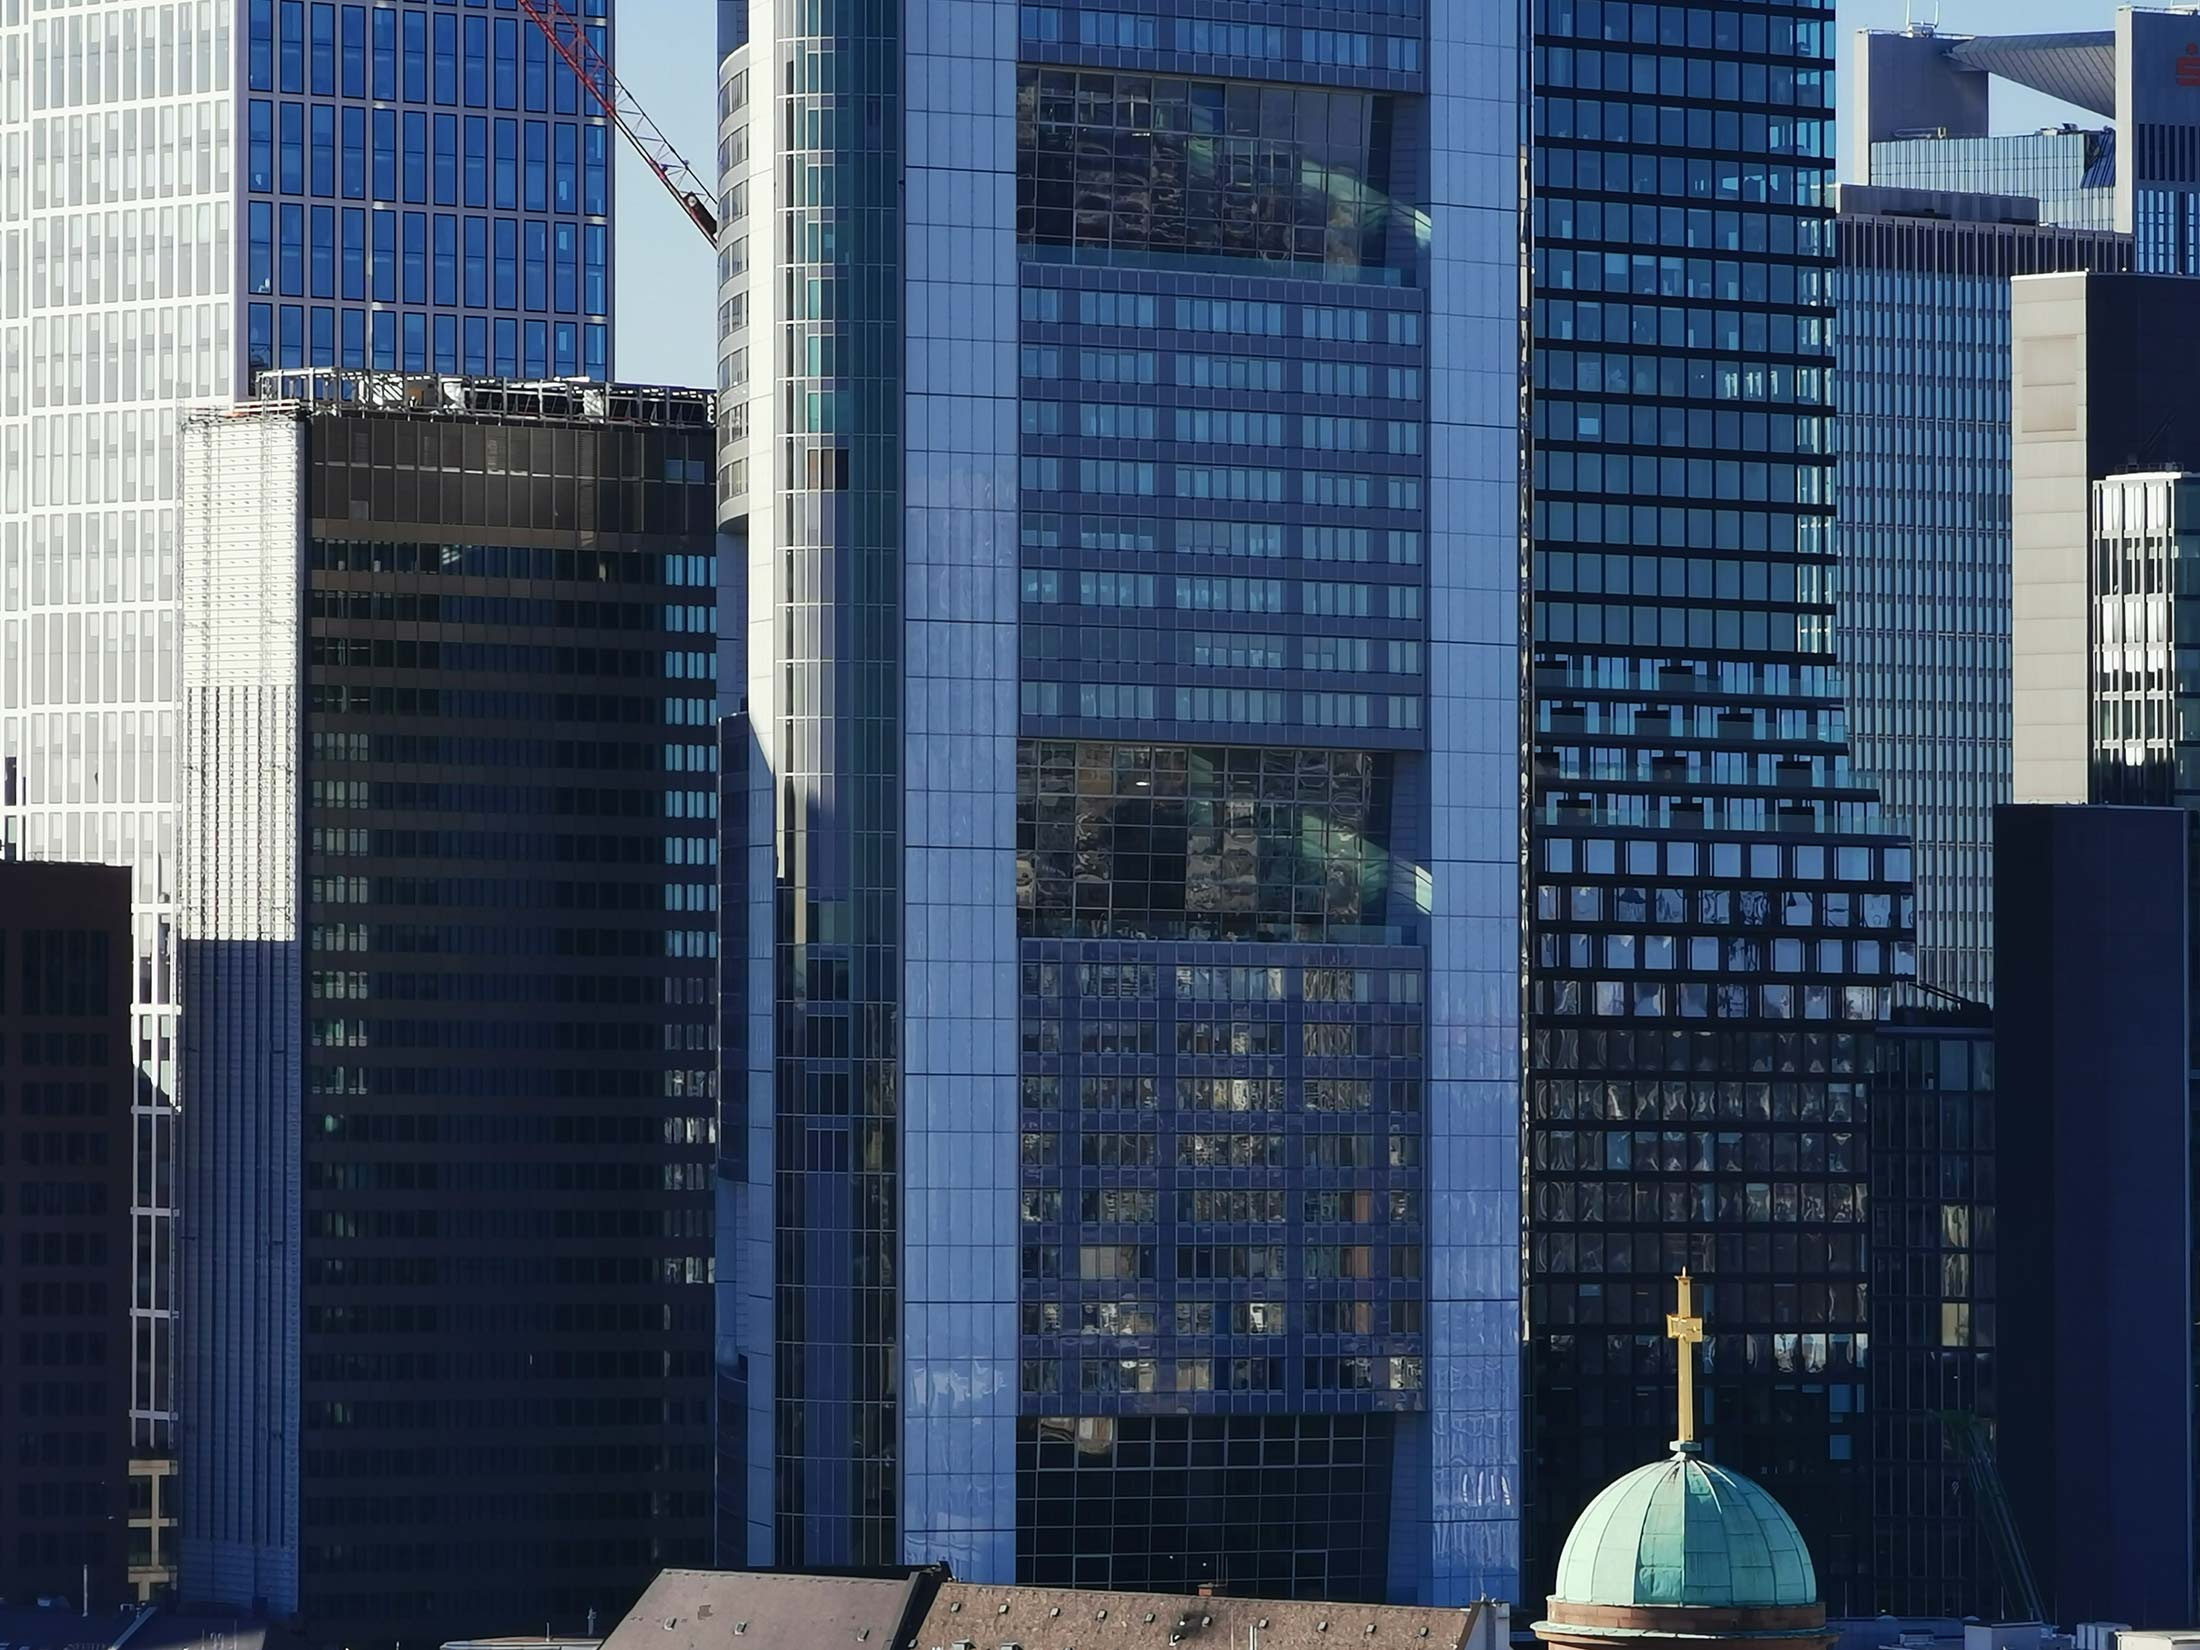 Frankfurt Financial District - CBD - concentration of skyscrapers